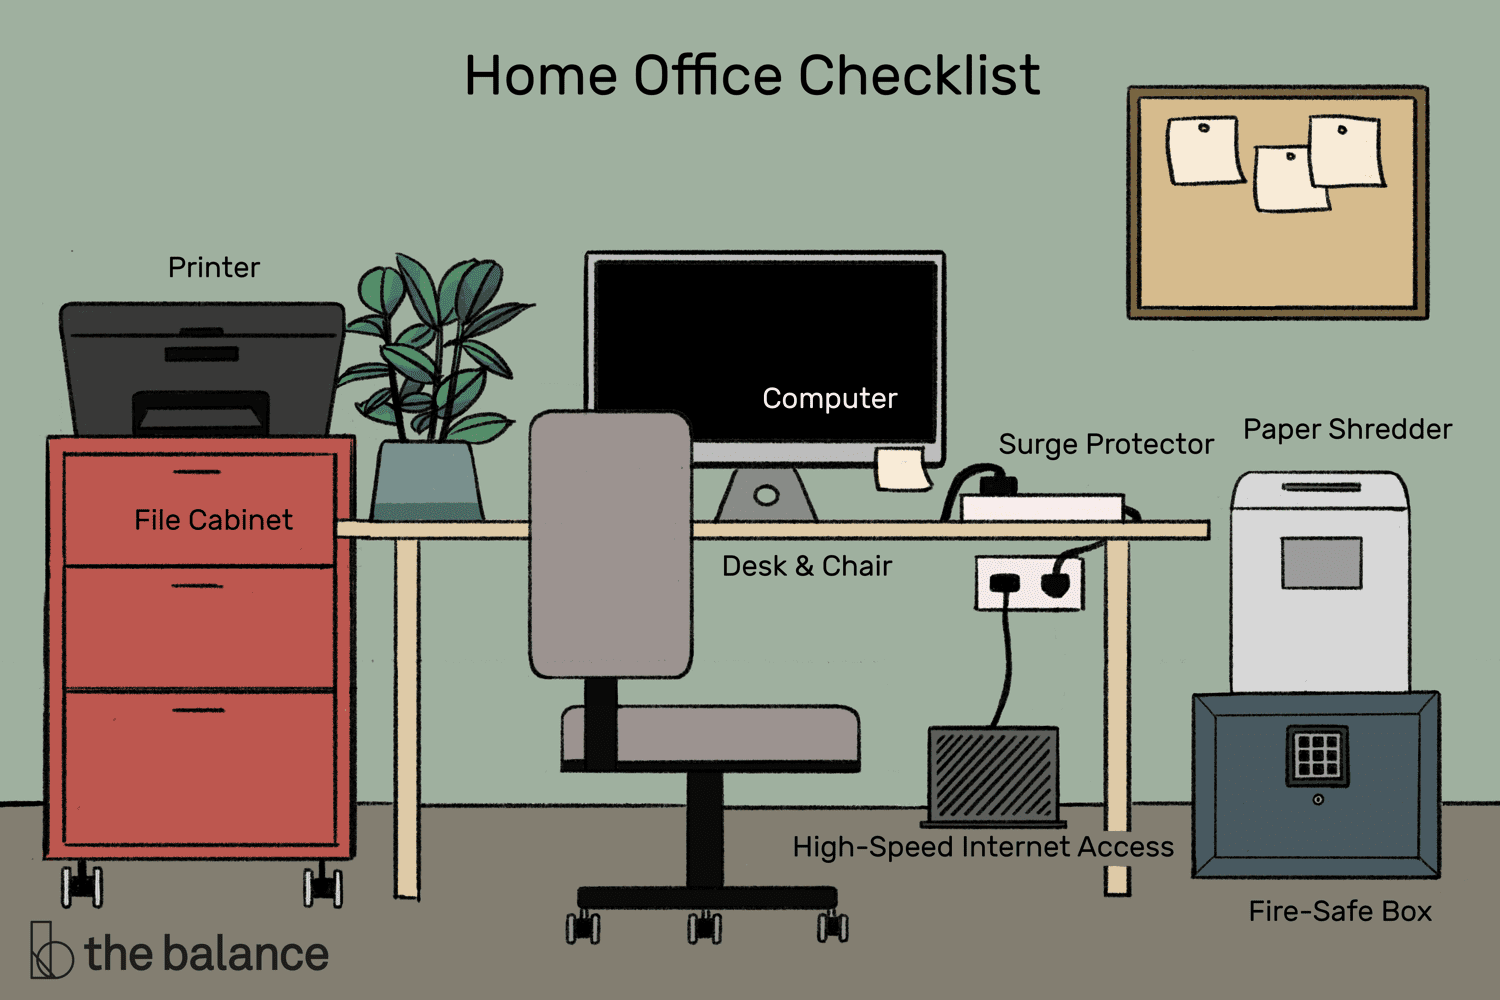 17 Items You Need to Set up an Efficient Home Office